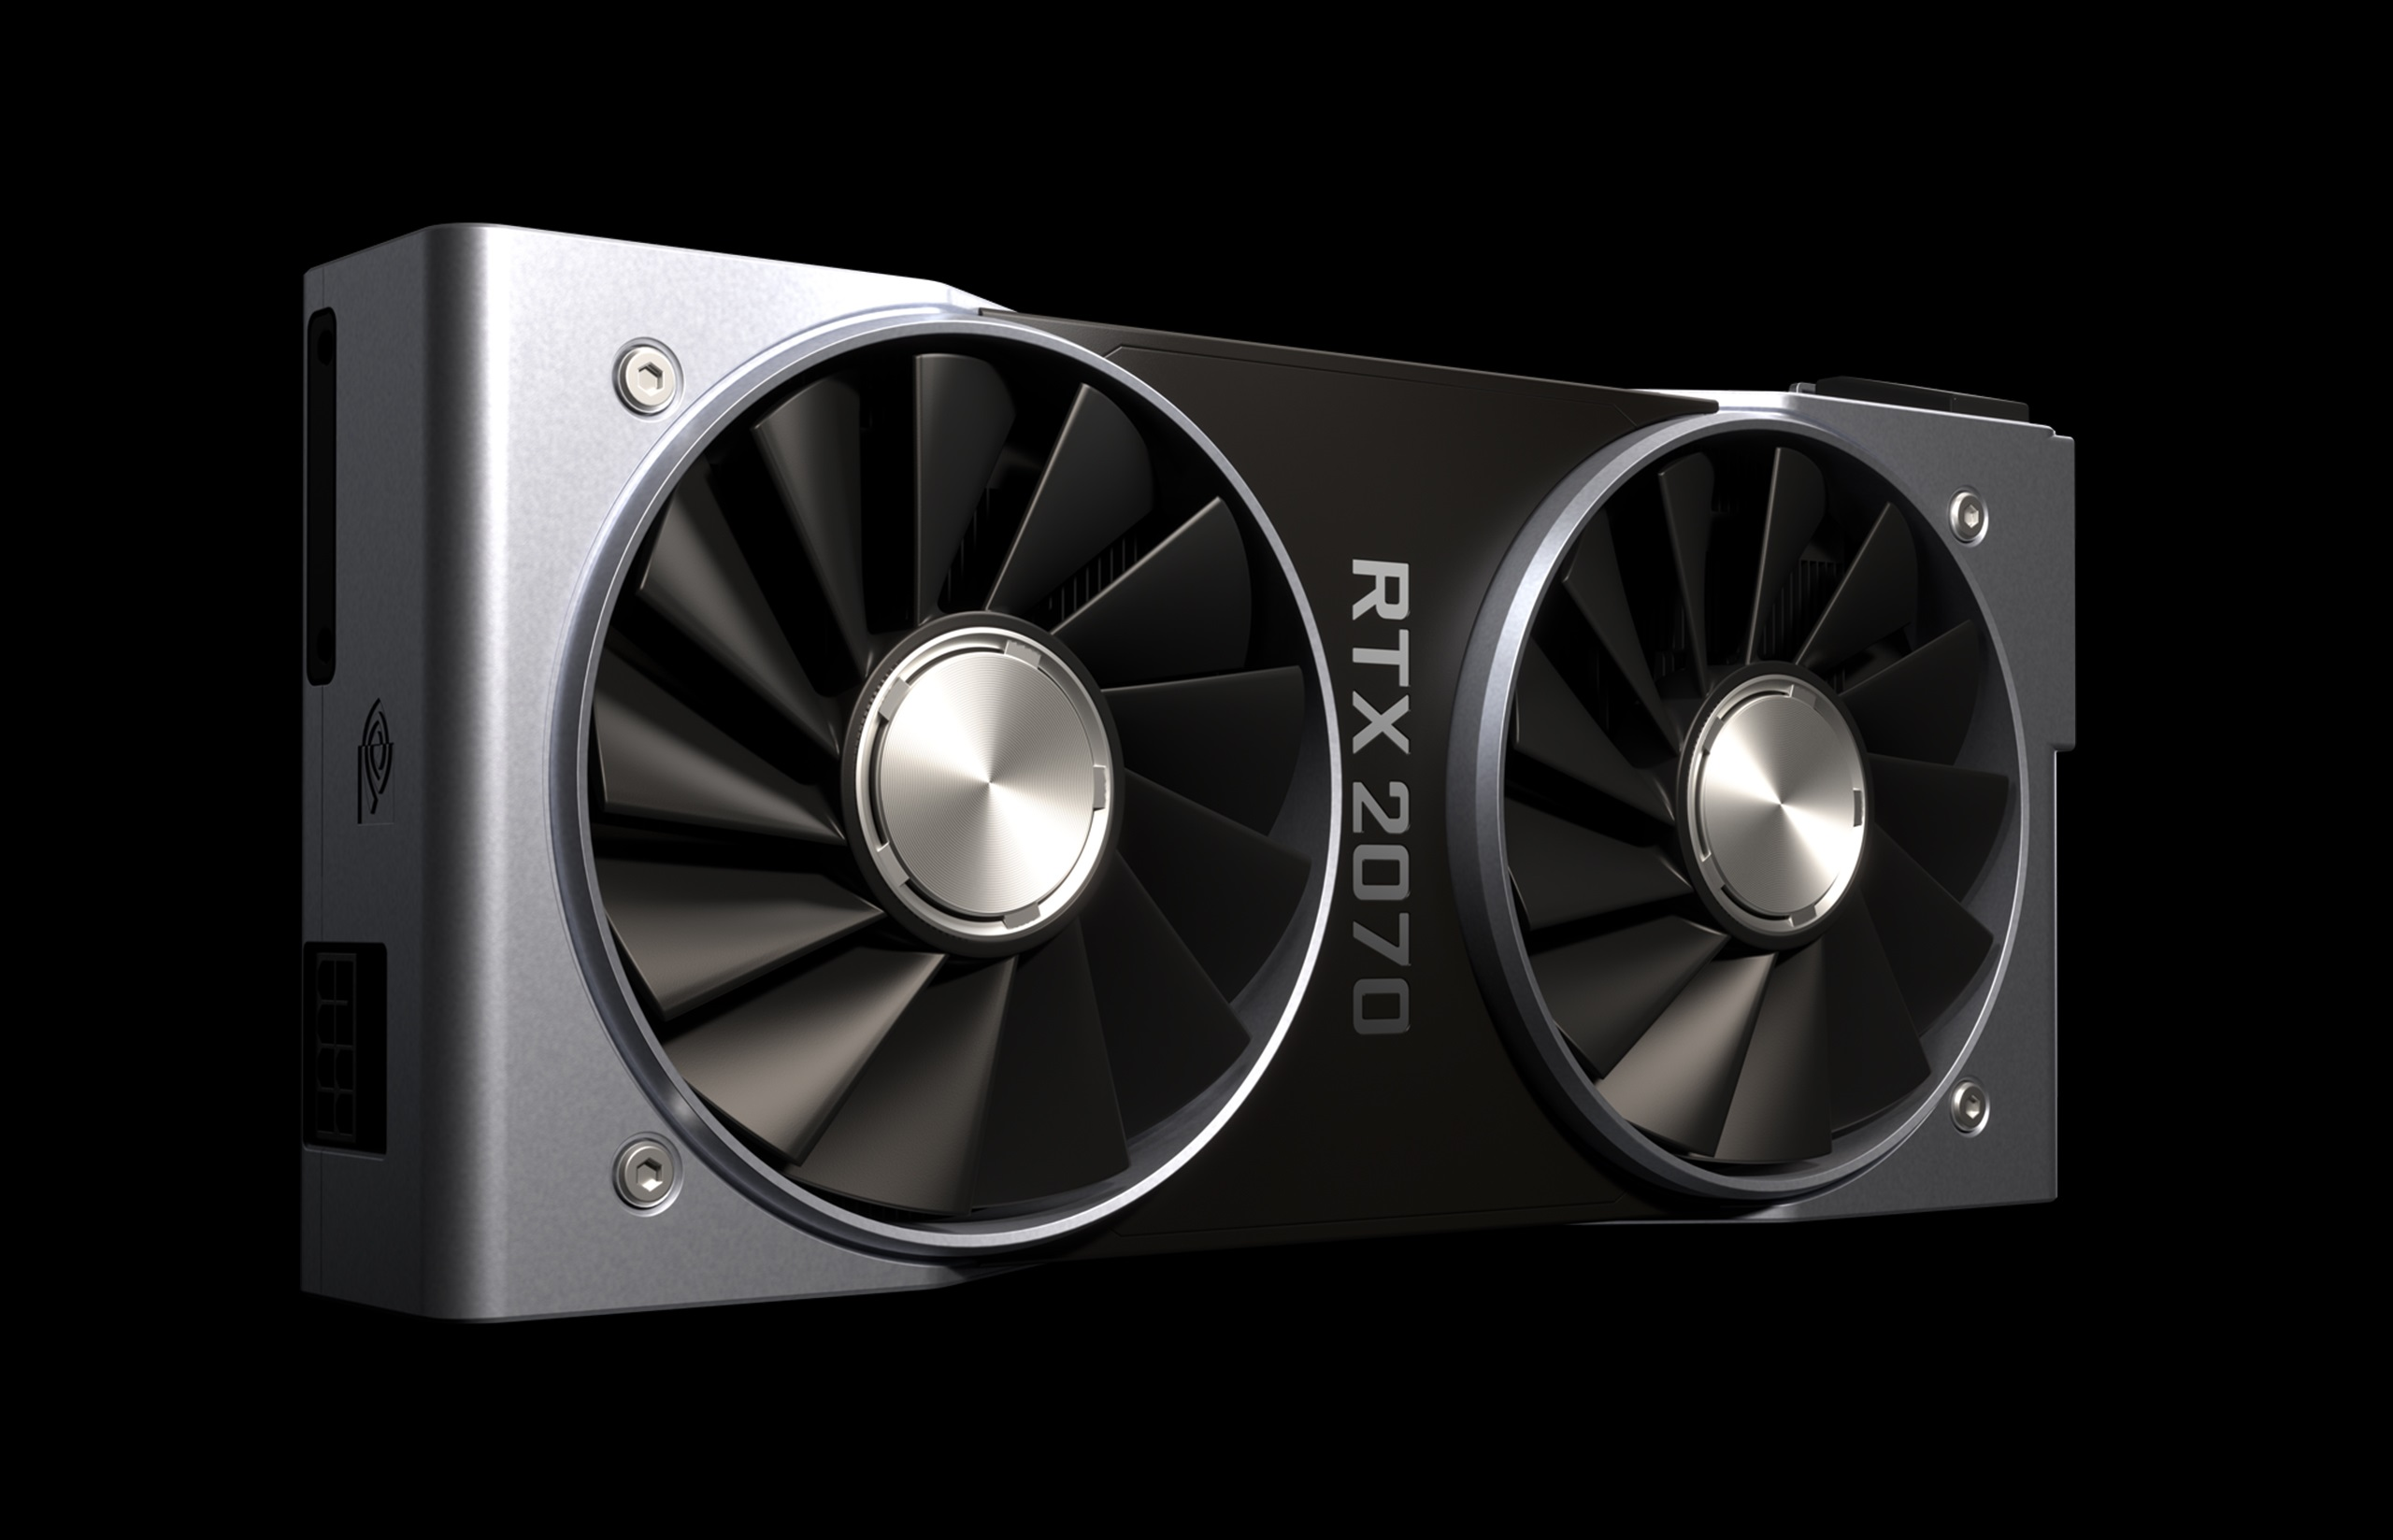 NVIDIA Scuttles AMD's Plans With Release Of RX 5700 XT